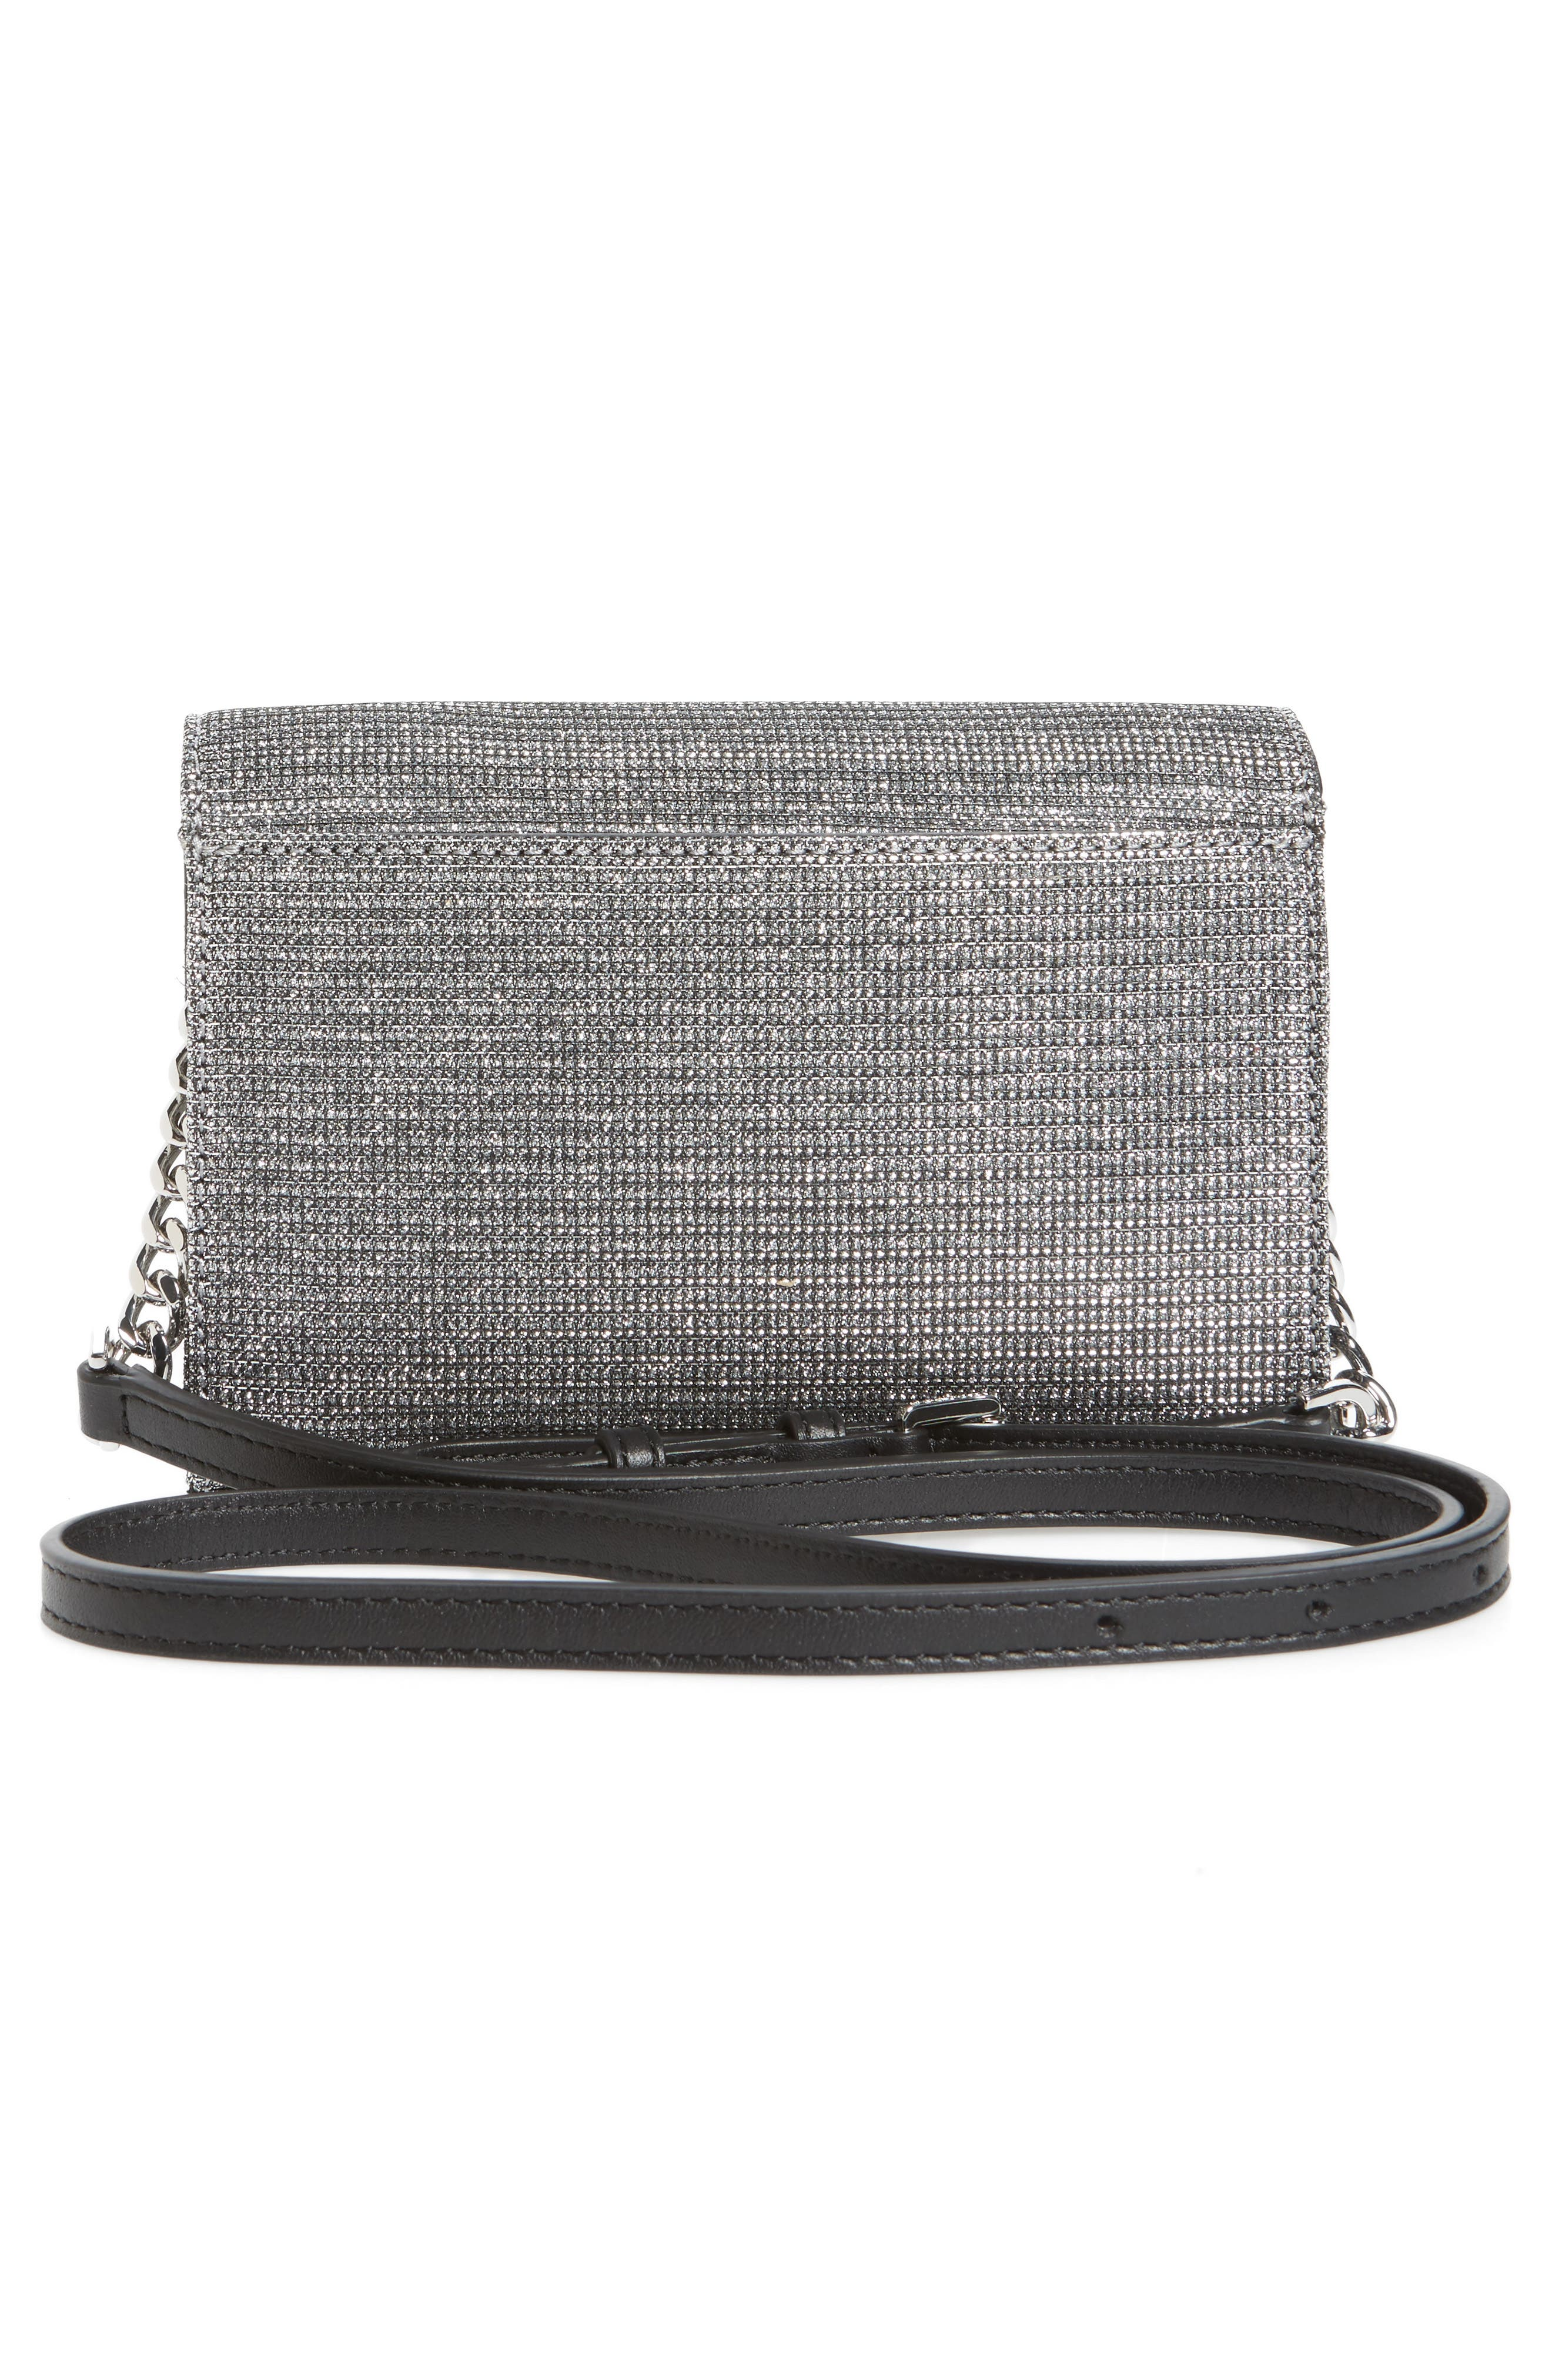 Medium Ruby Convertible Leather Clutch,                             Alternate thumbnail 3, color,                             043